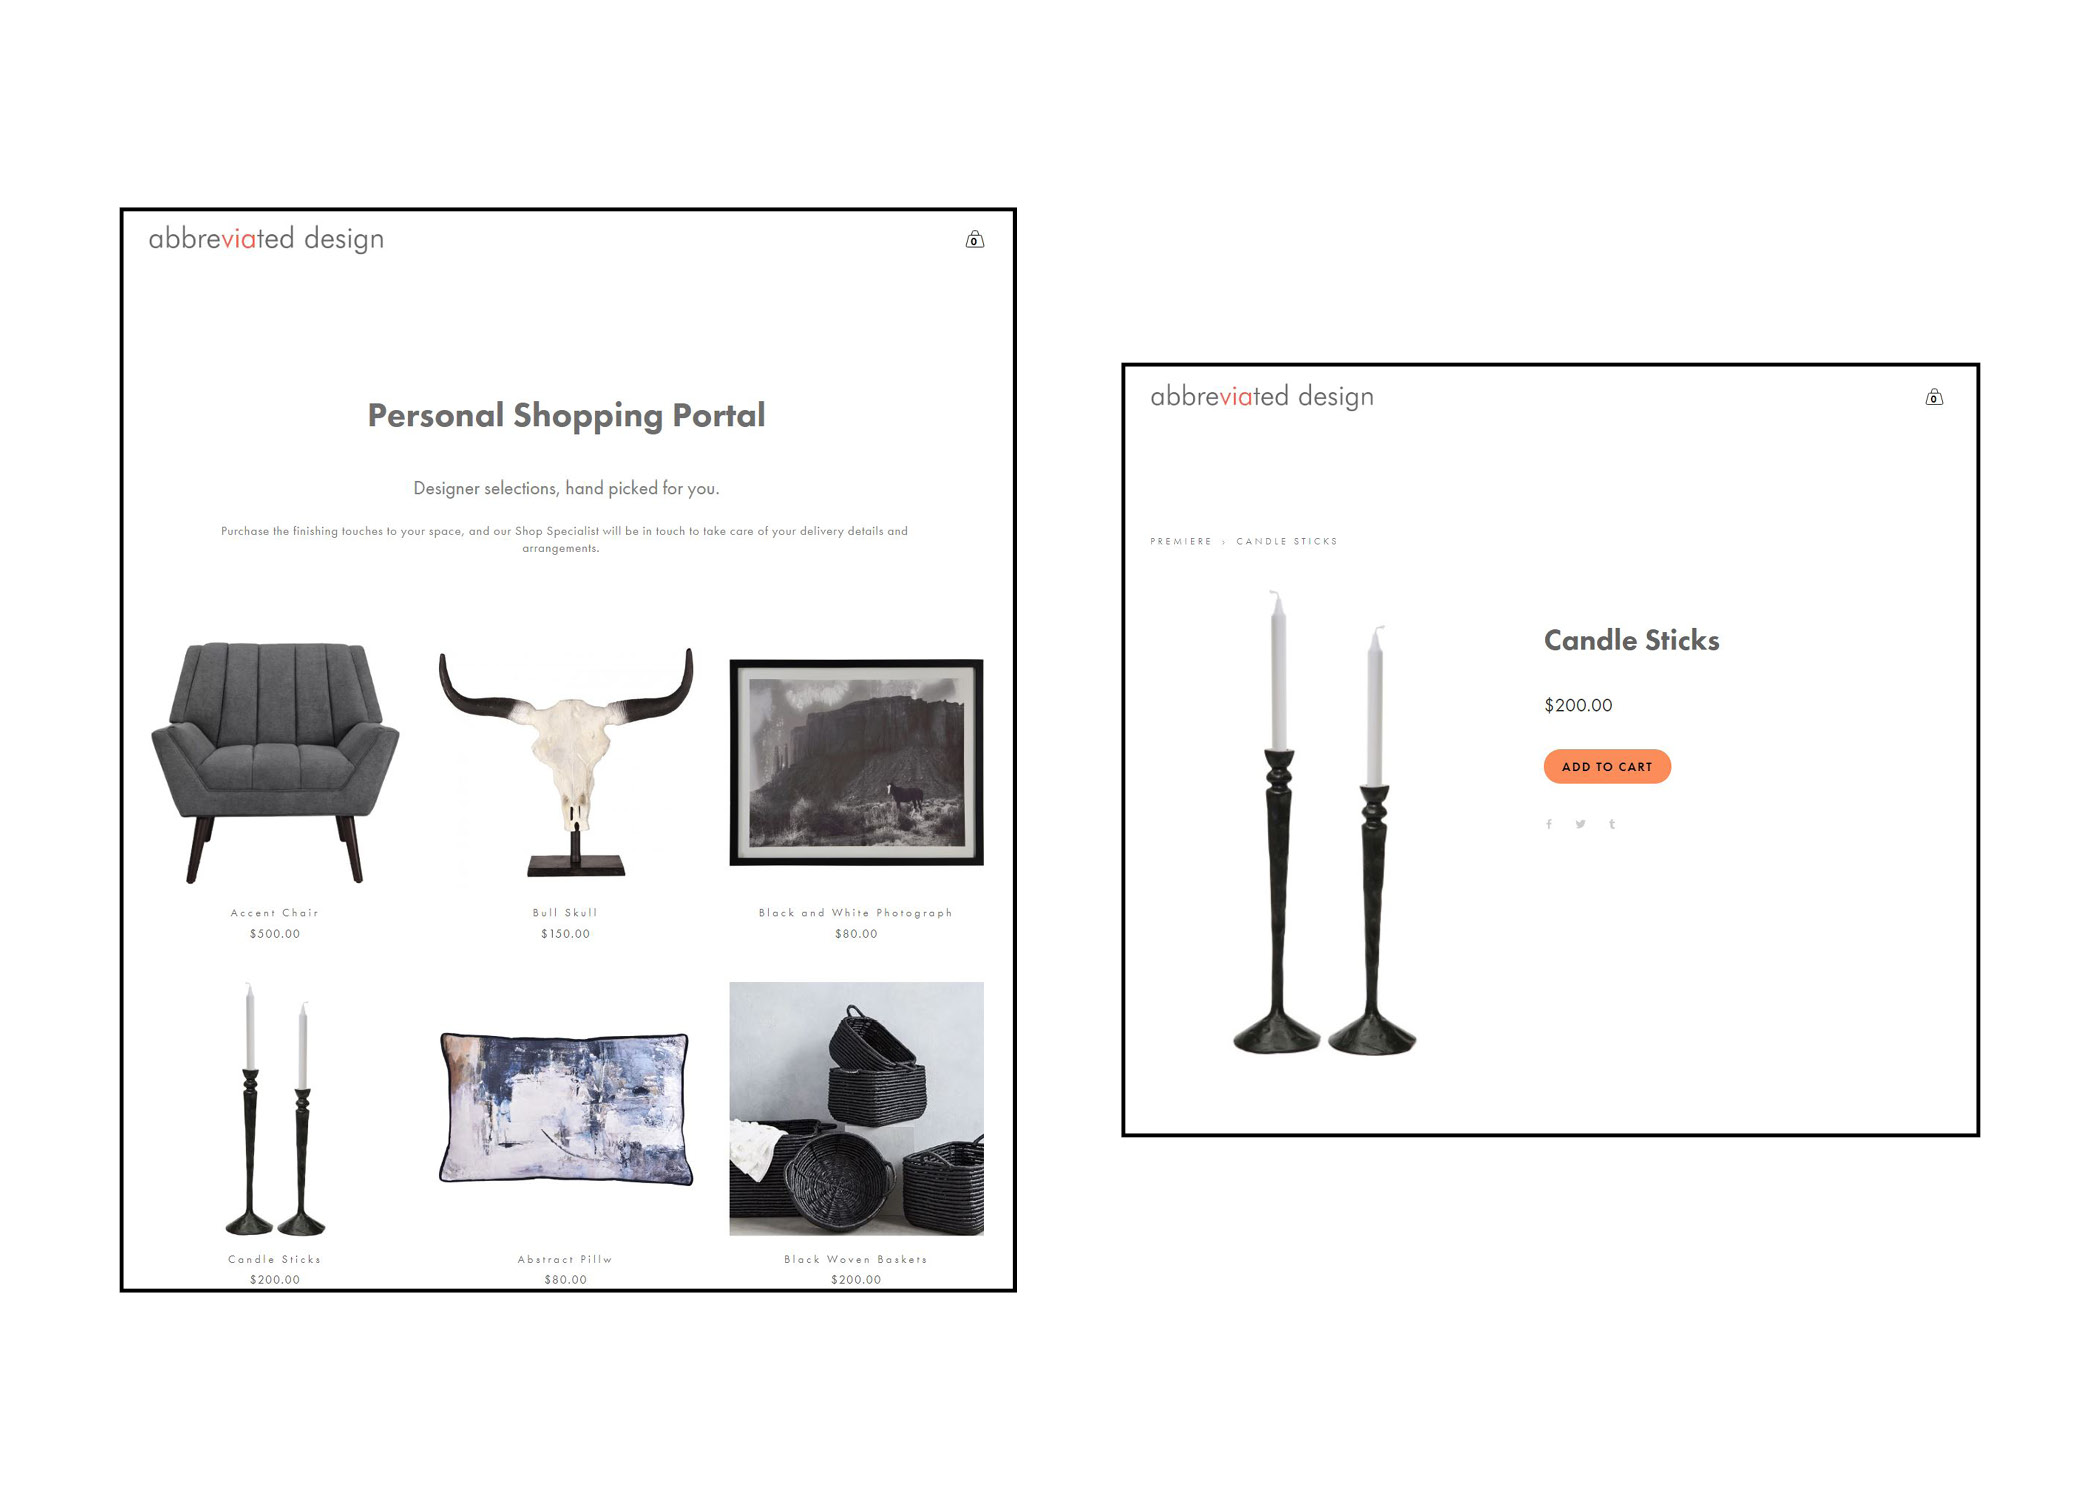 Personal shopping portal home and product pages.